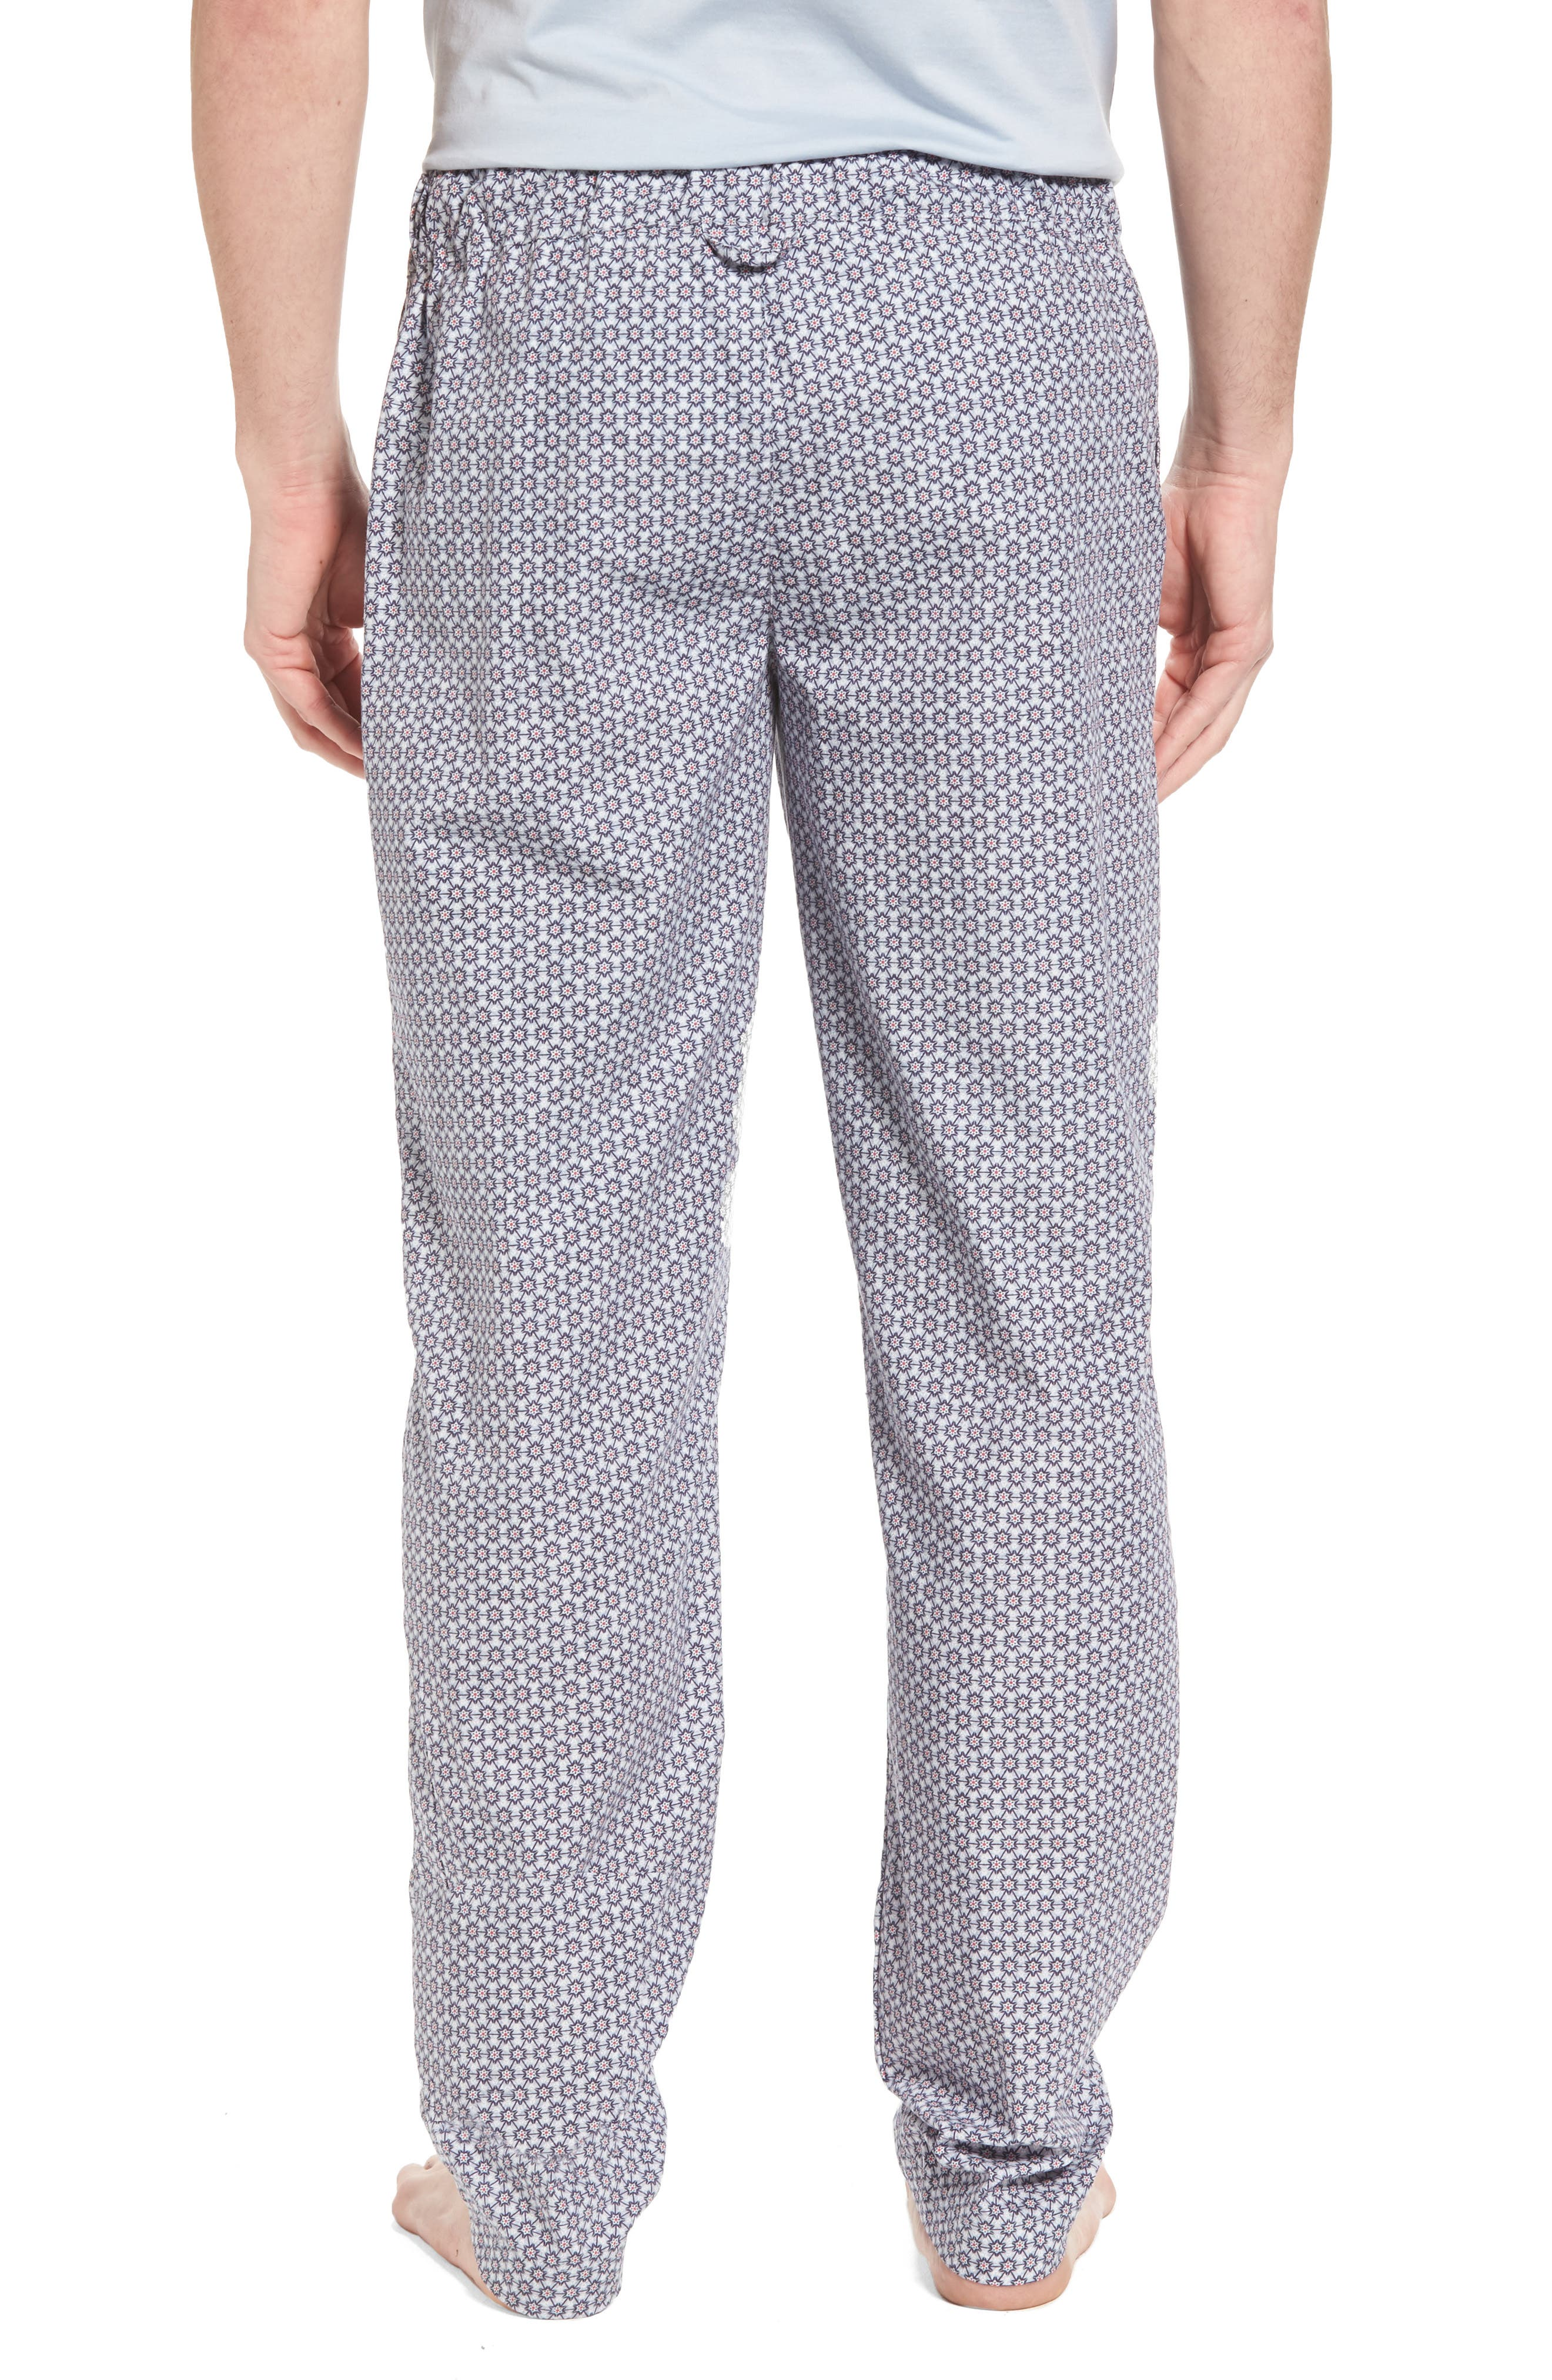 Night & Day Woven Lounge Pants,                             Alternate thumbnail 2, color,                             Classic Flower Print